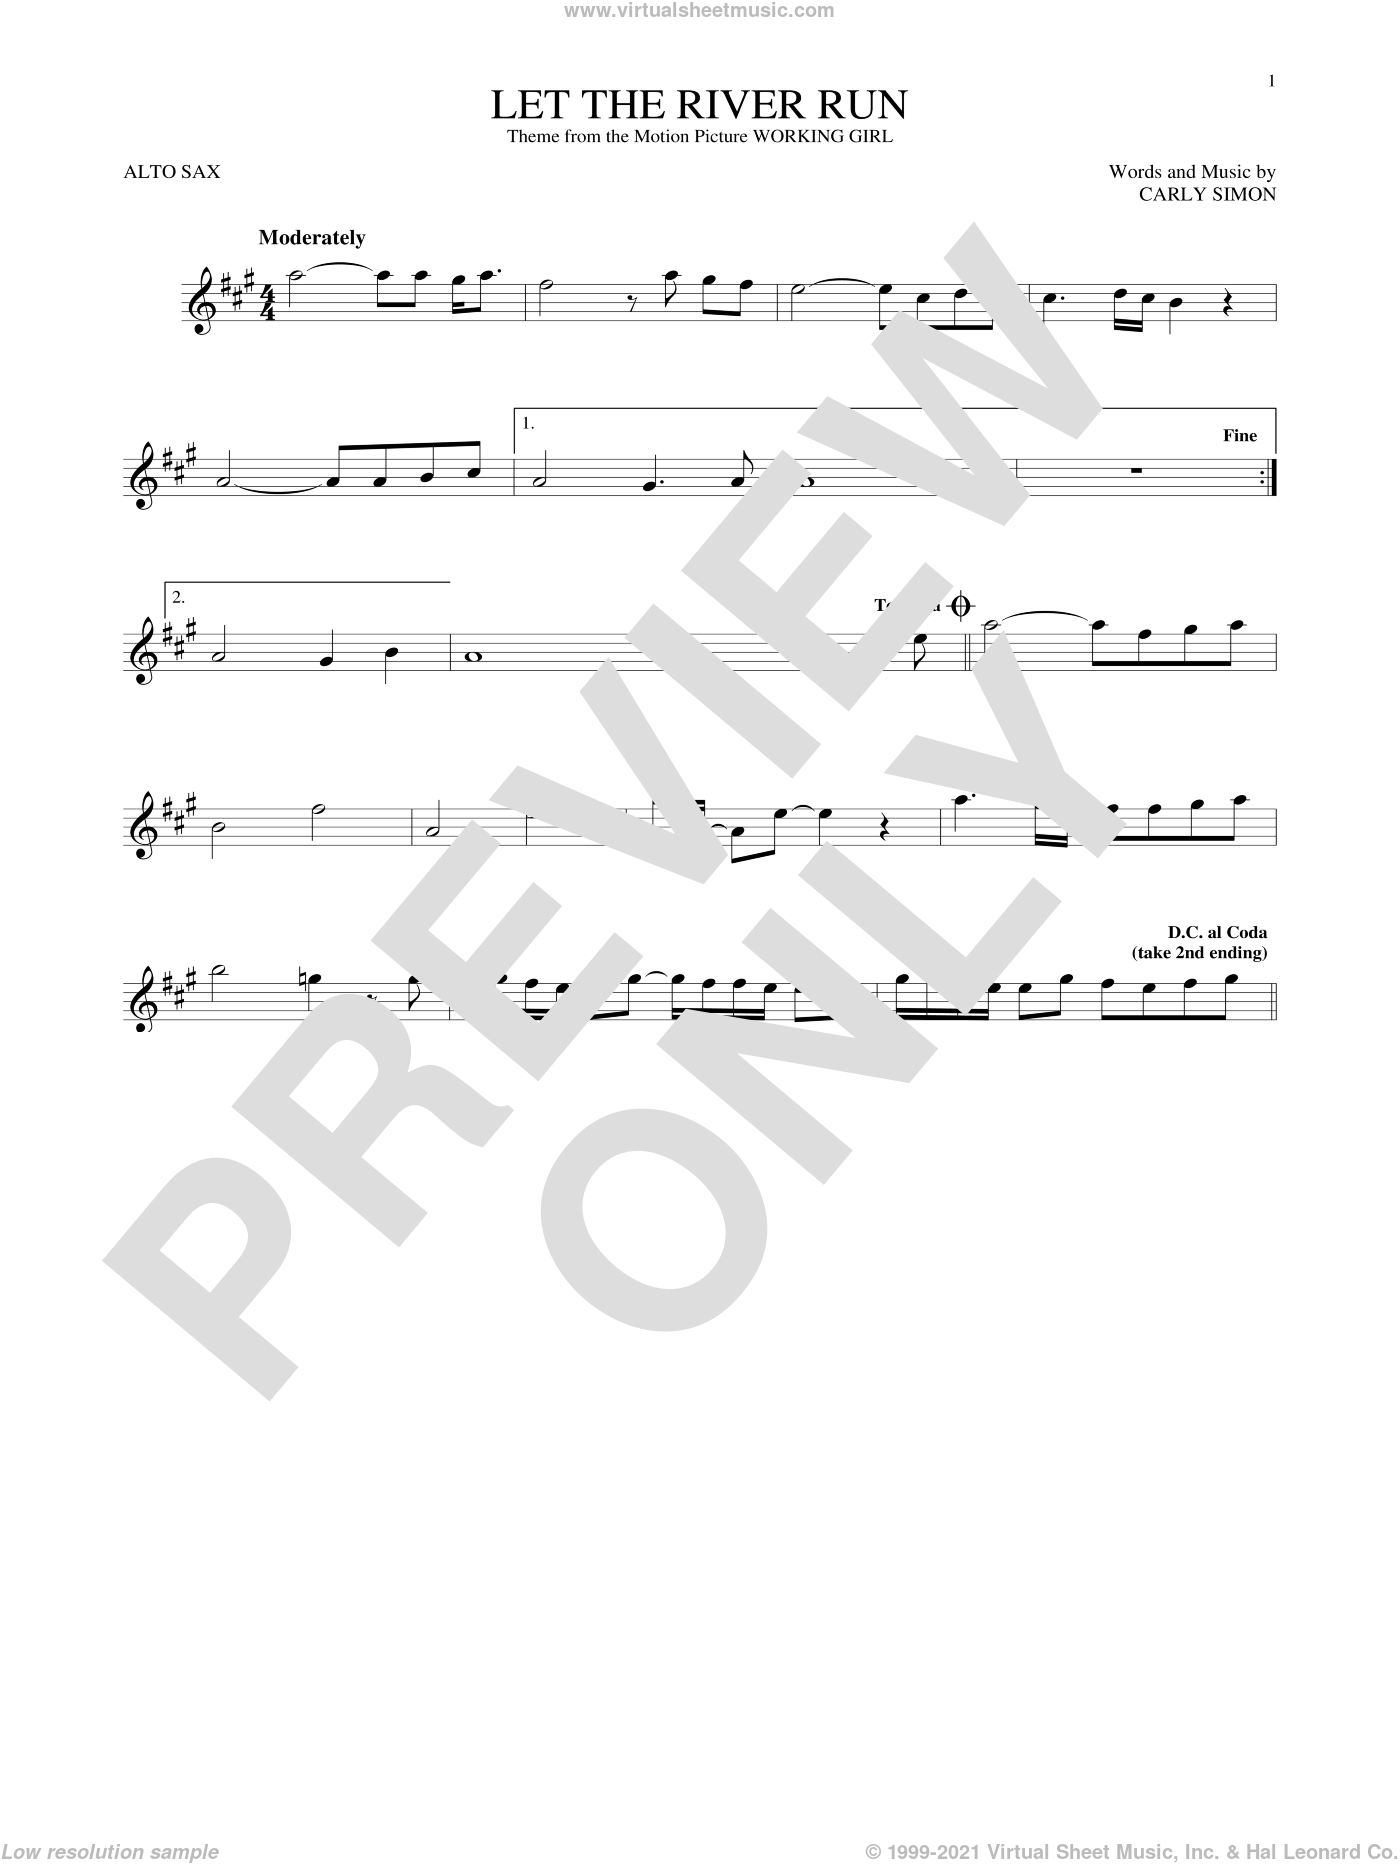 Let The River Run sheet music for alto saxophone solo ( Sax) by Carly Simon. Score Image Preview.